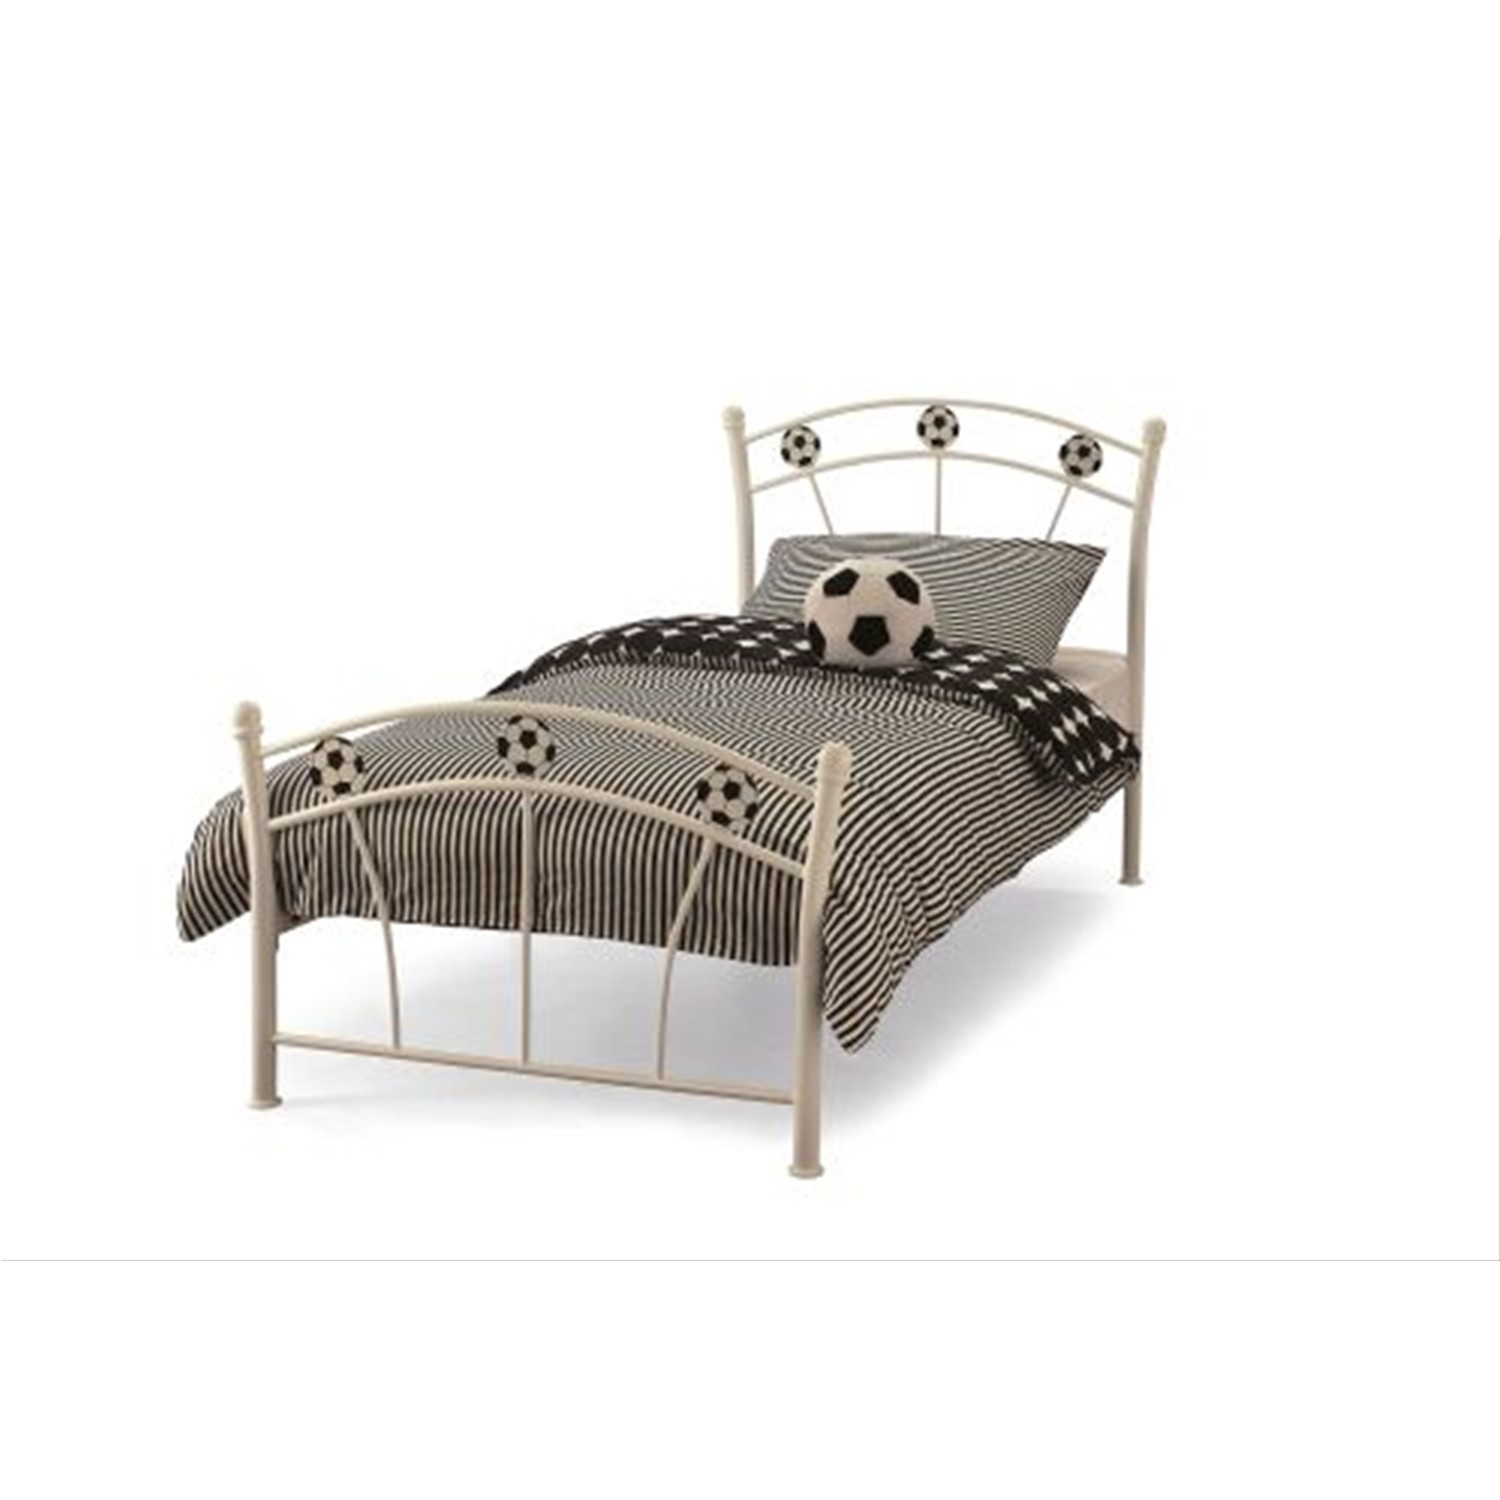 Casa soccer small single bed frame leekes for Small single bed